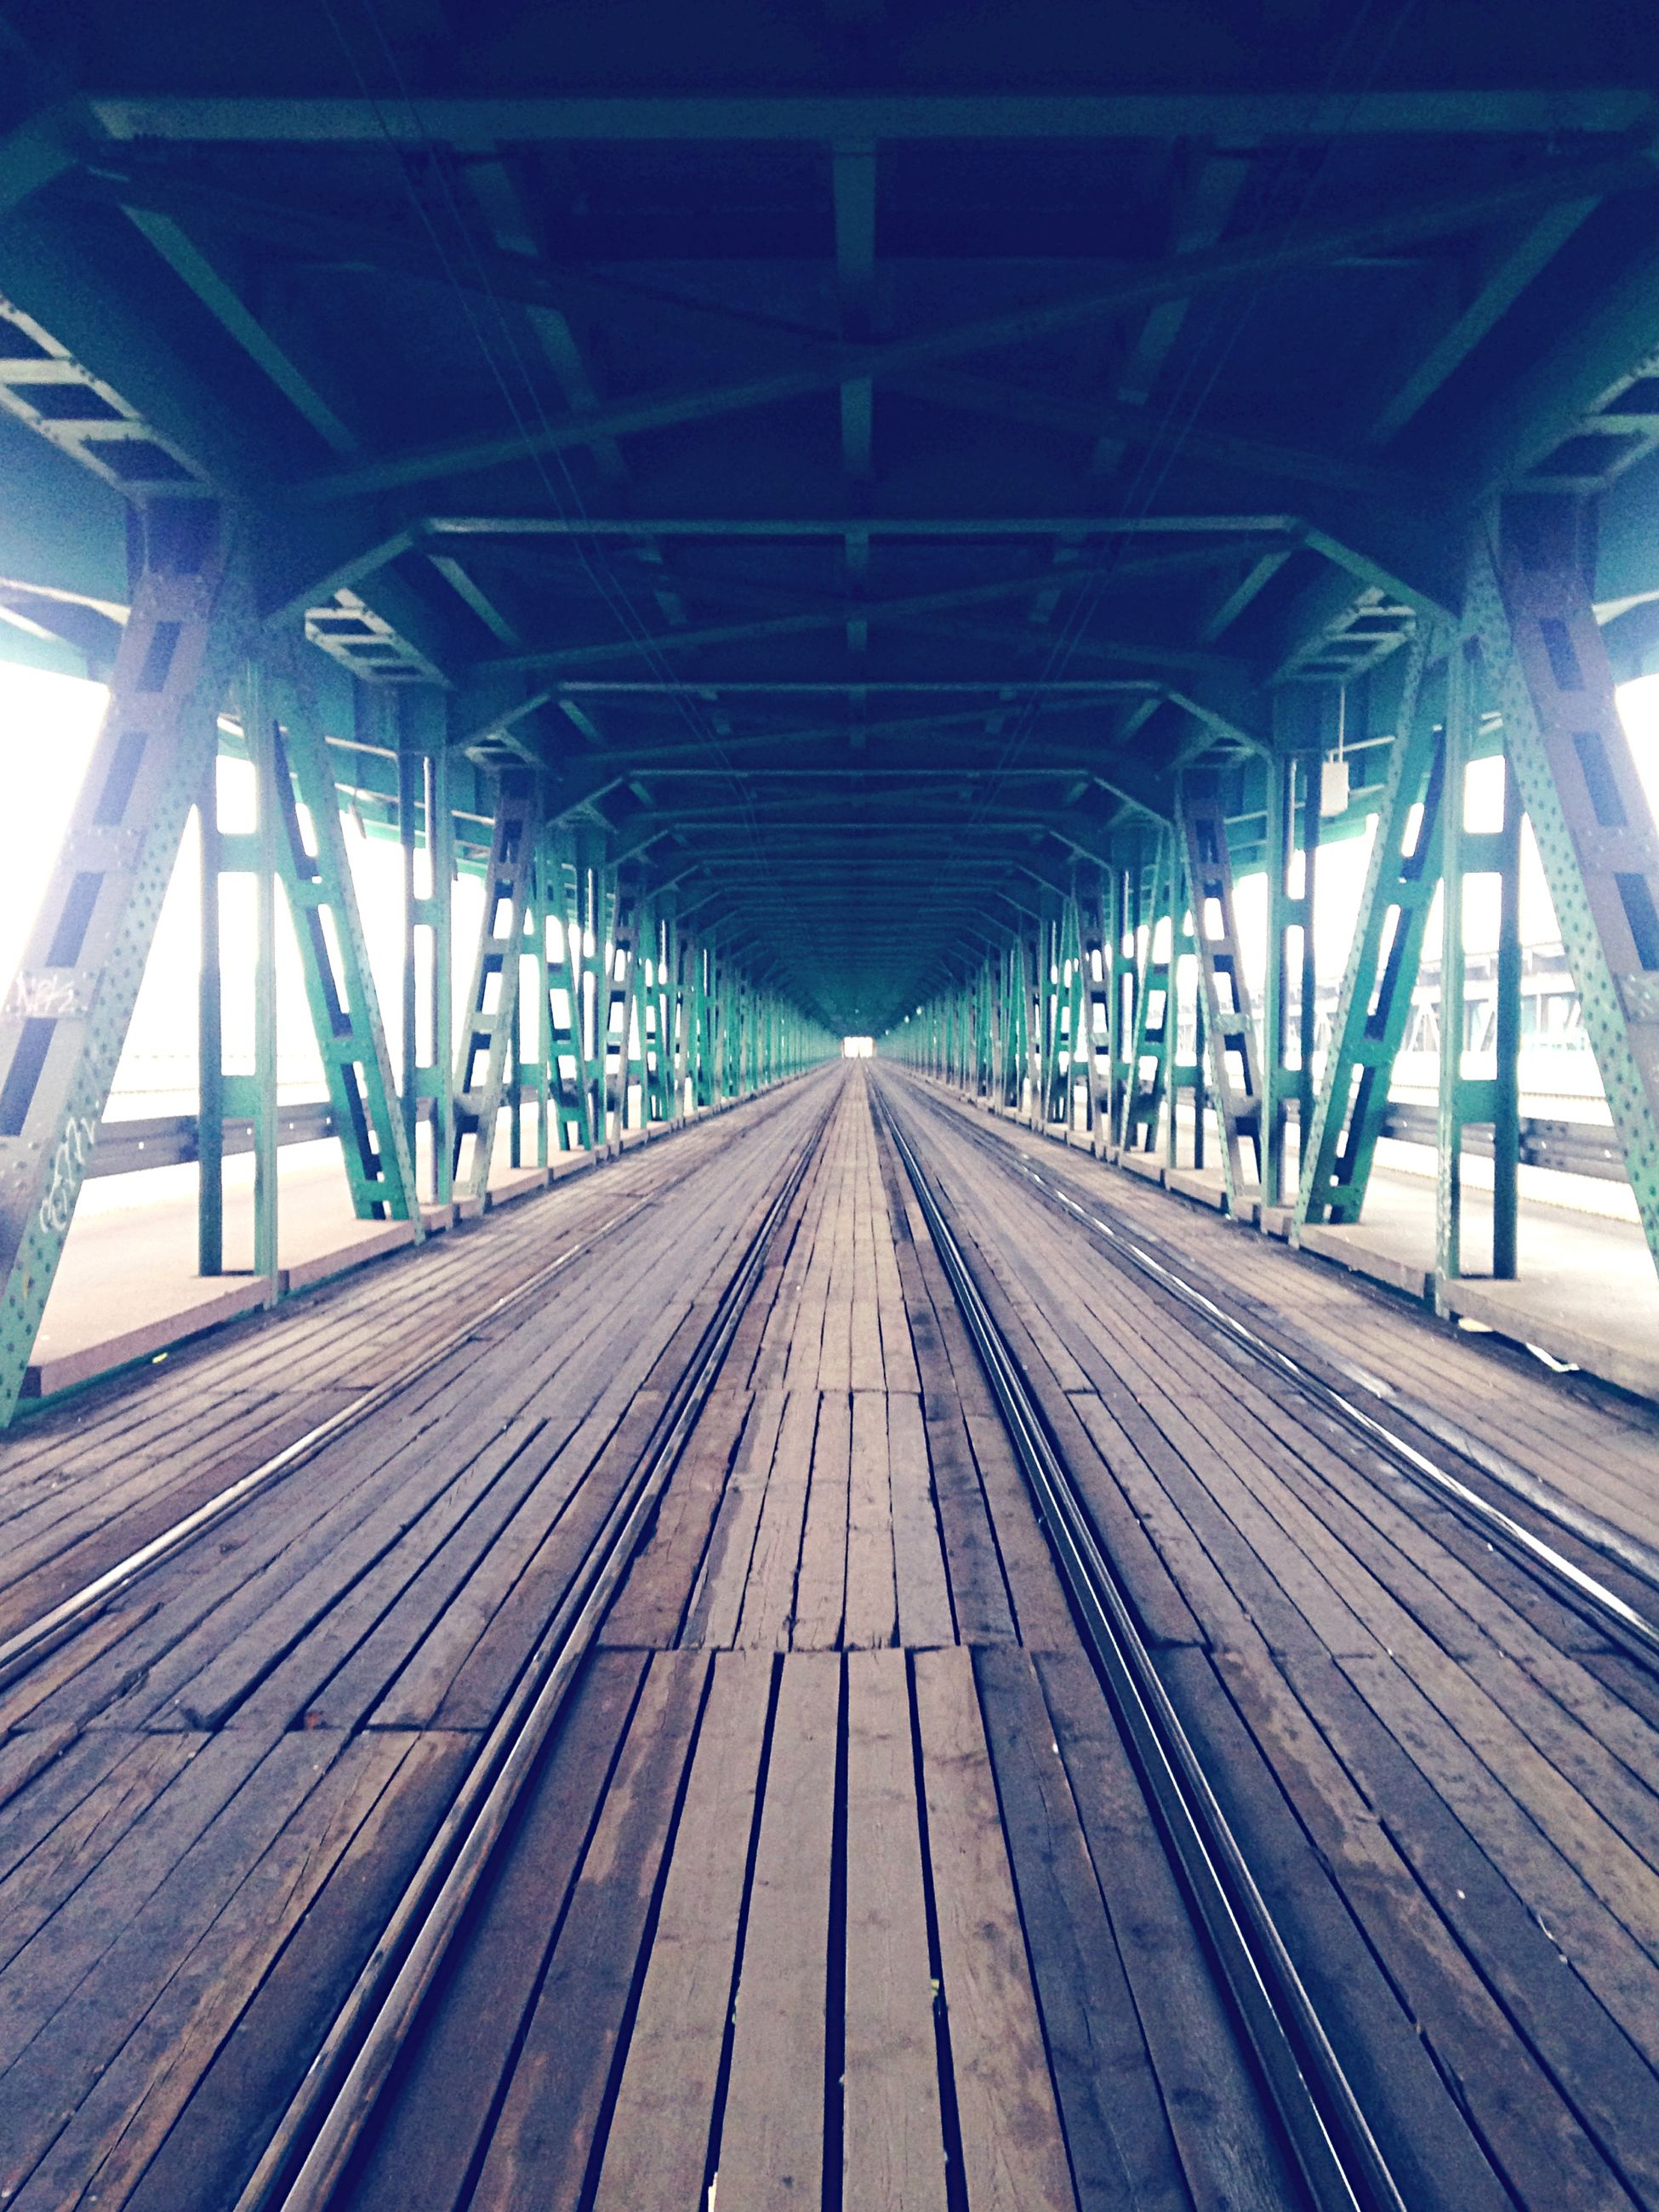 the way forward, diminishing perspective, vanishing point, transportation, railroad track, rail transportation, built structure, architecture, indoors, long, ceiling, connection, metal, empty, no people, day, surface level, wood - material, straight, bridge - man made structure